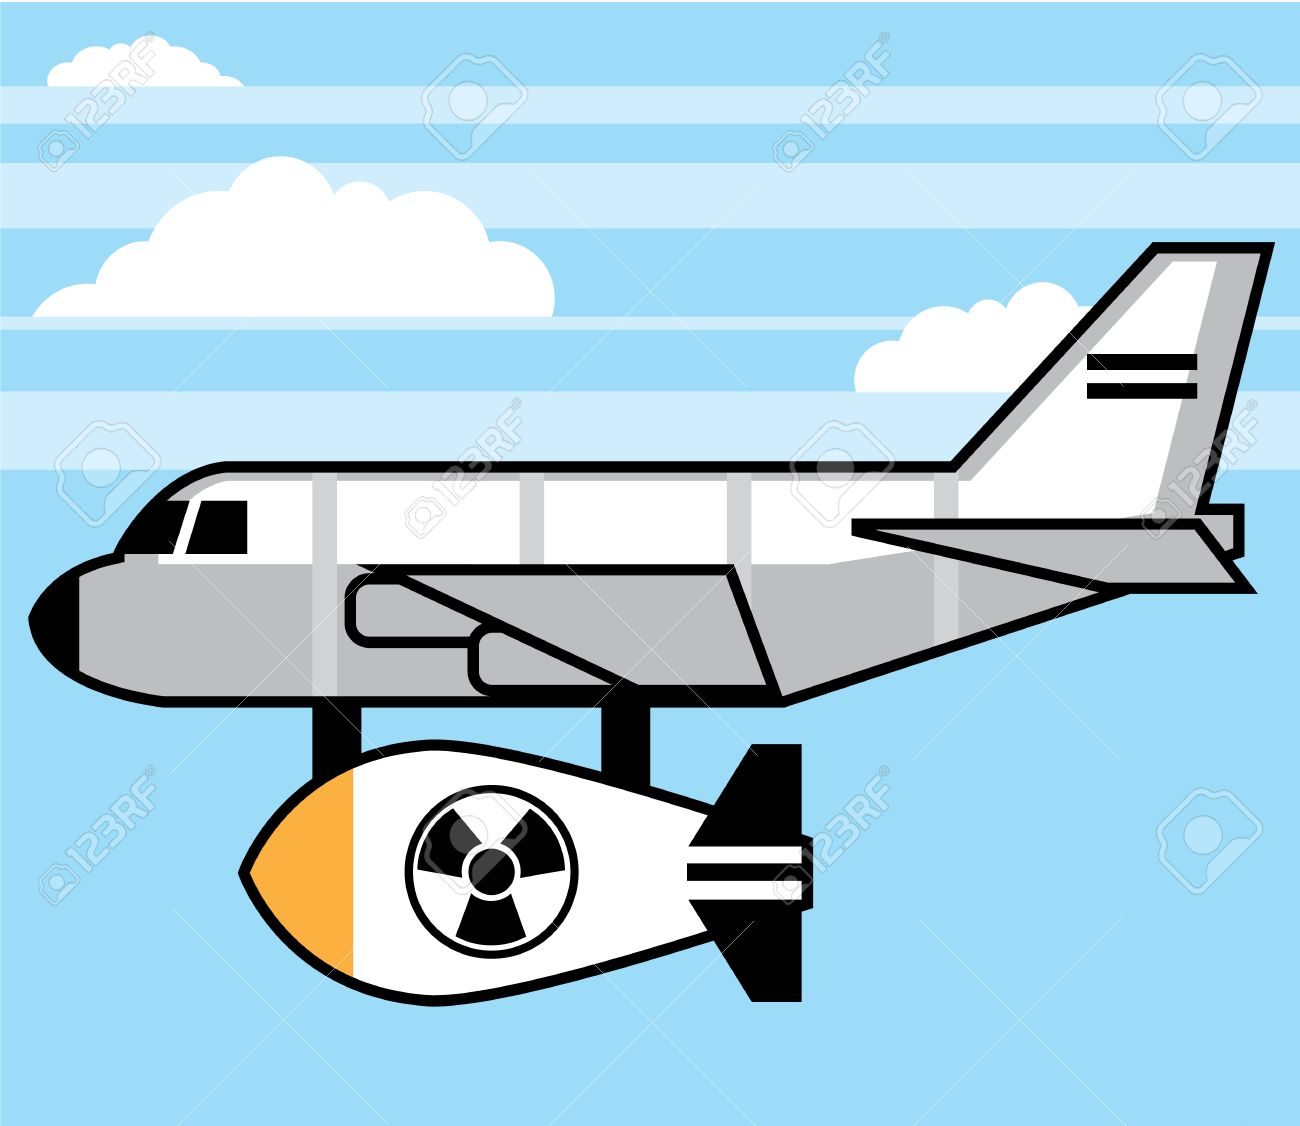 Plane cartoon bomber with a bomb vector illustration.